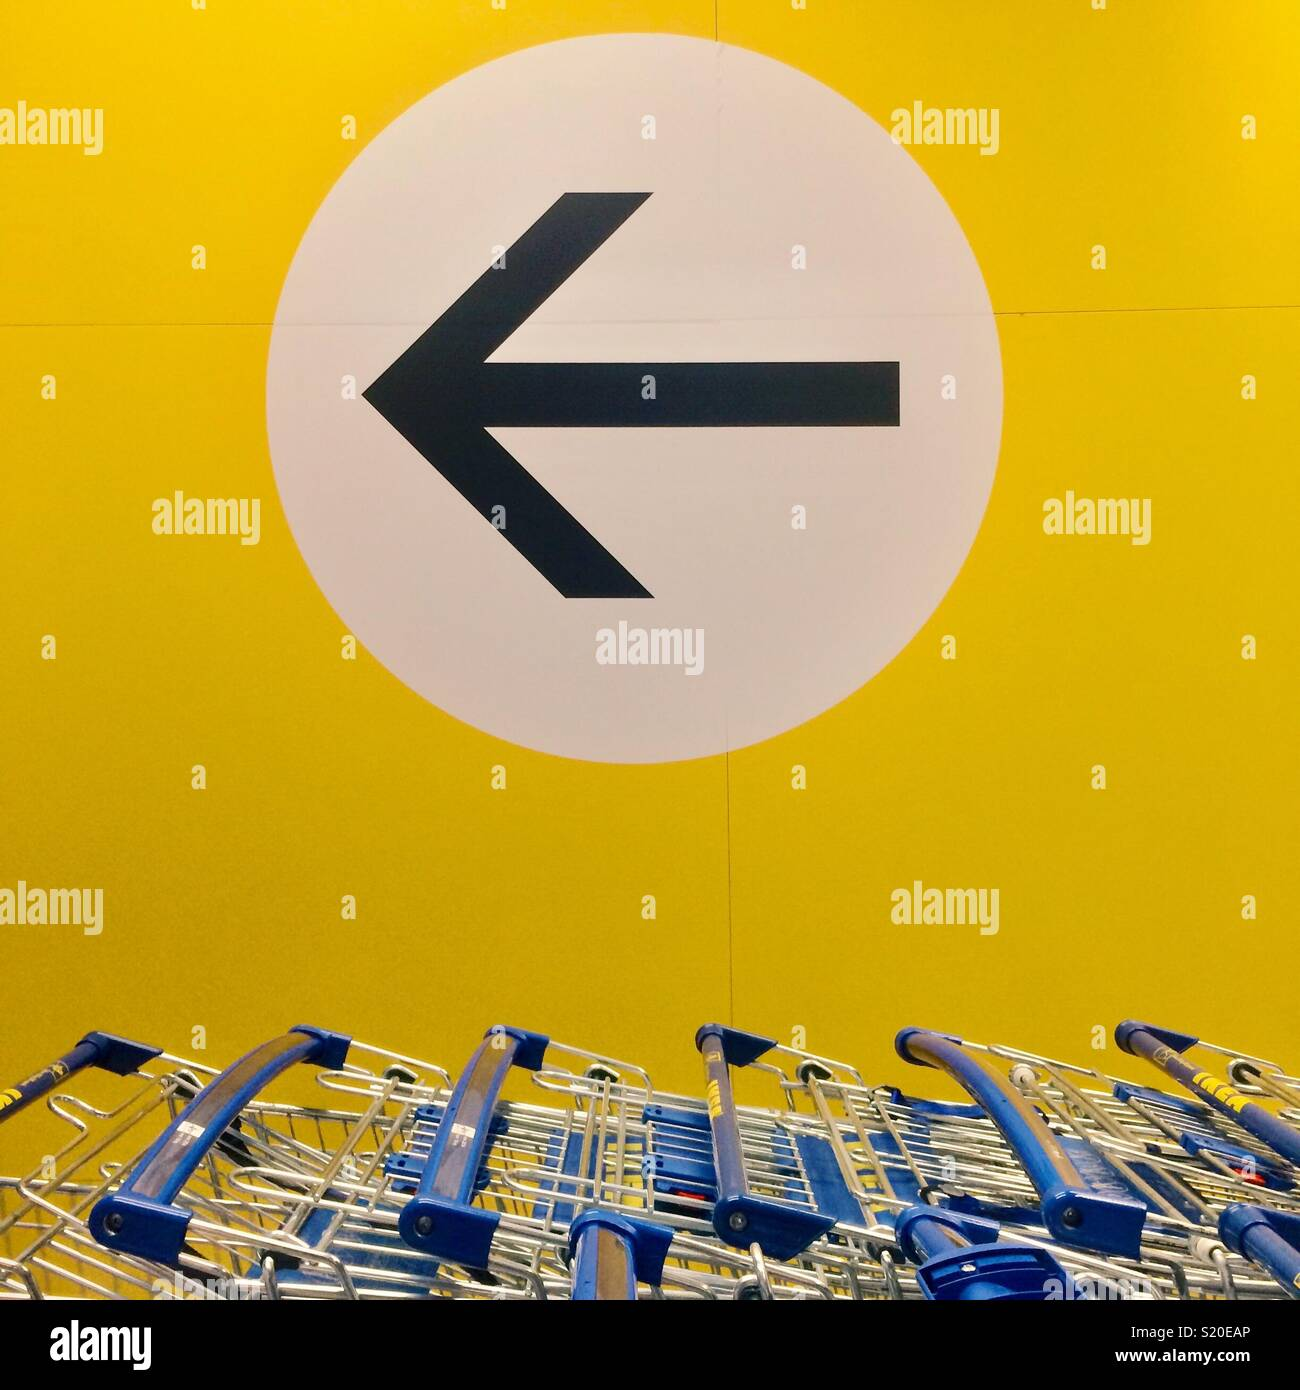 IKEA shopping trolleys and arrow sign - Stock Image